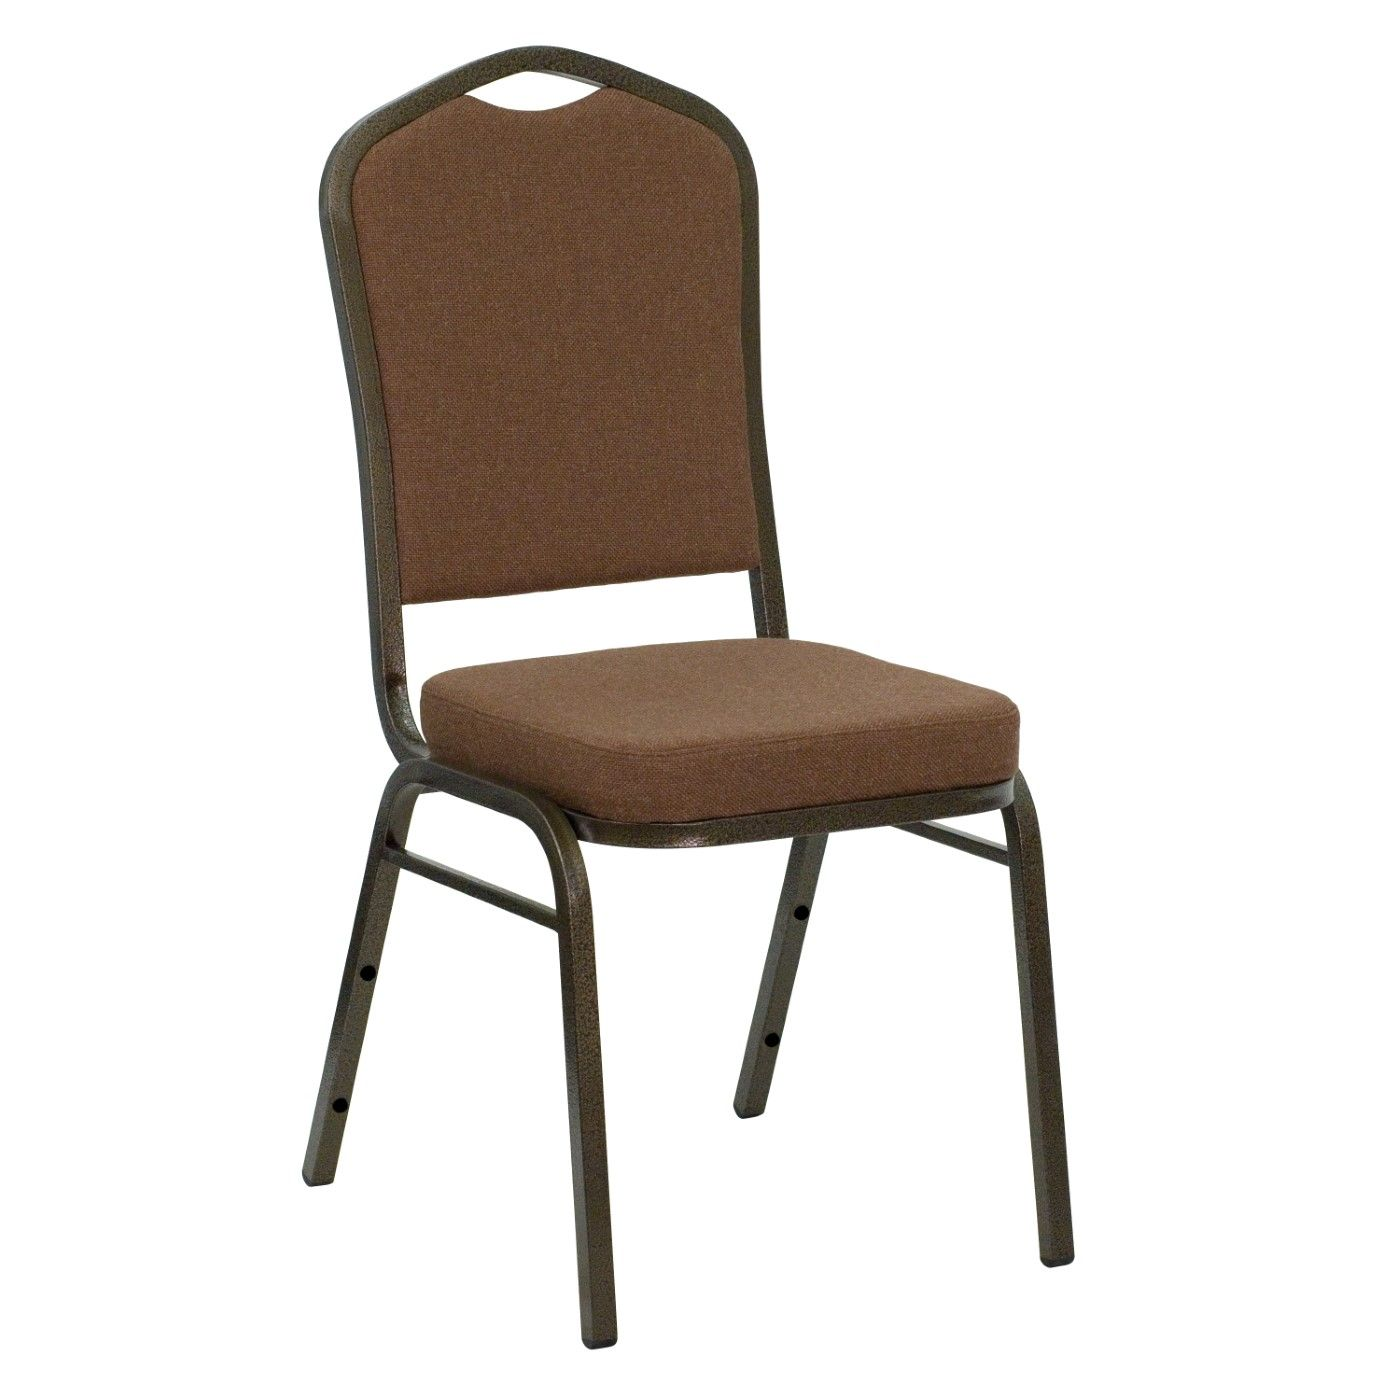 TOUGH ENOUGH Series Crown Back Stacking Banquet Chair in Coffee Fabric - Gold Vein Frame